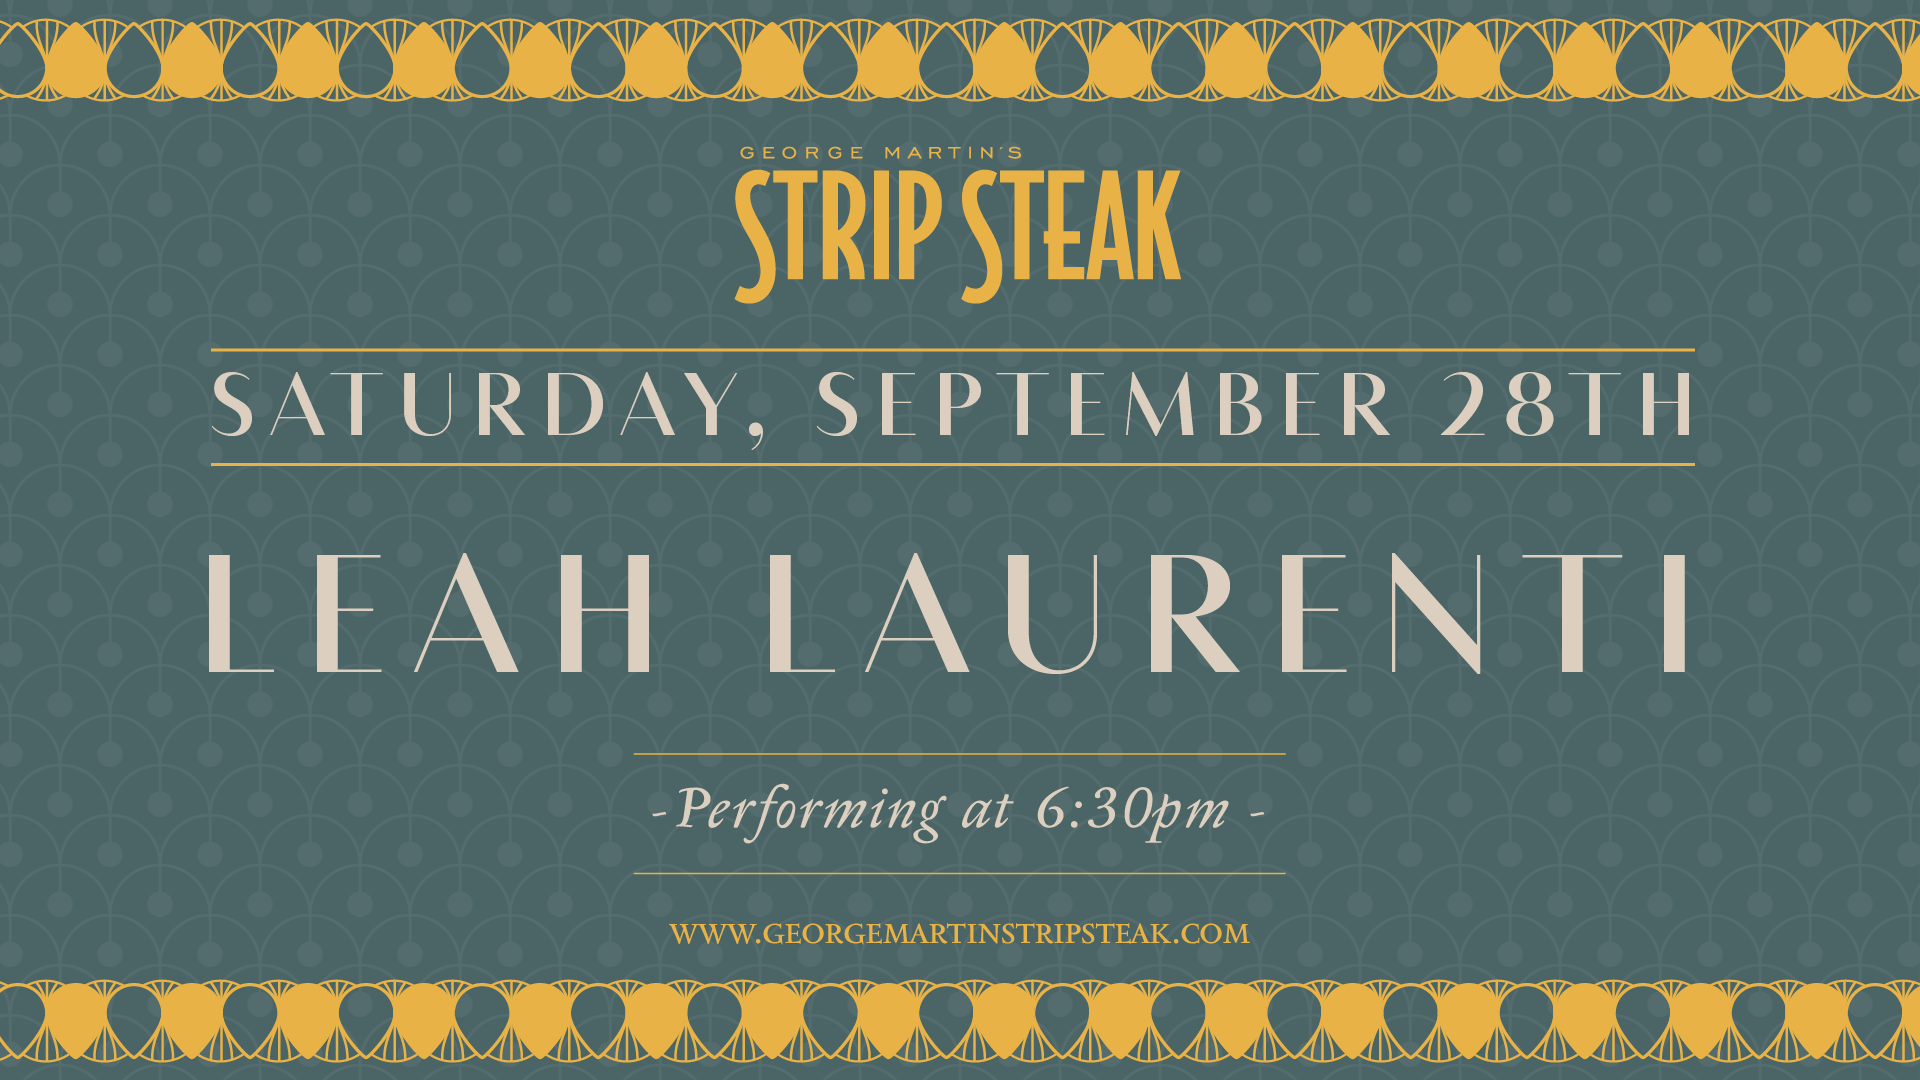 Flyer for Leah Laurenti on Saturday, September 28th at 6:30pm